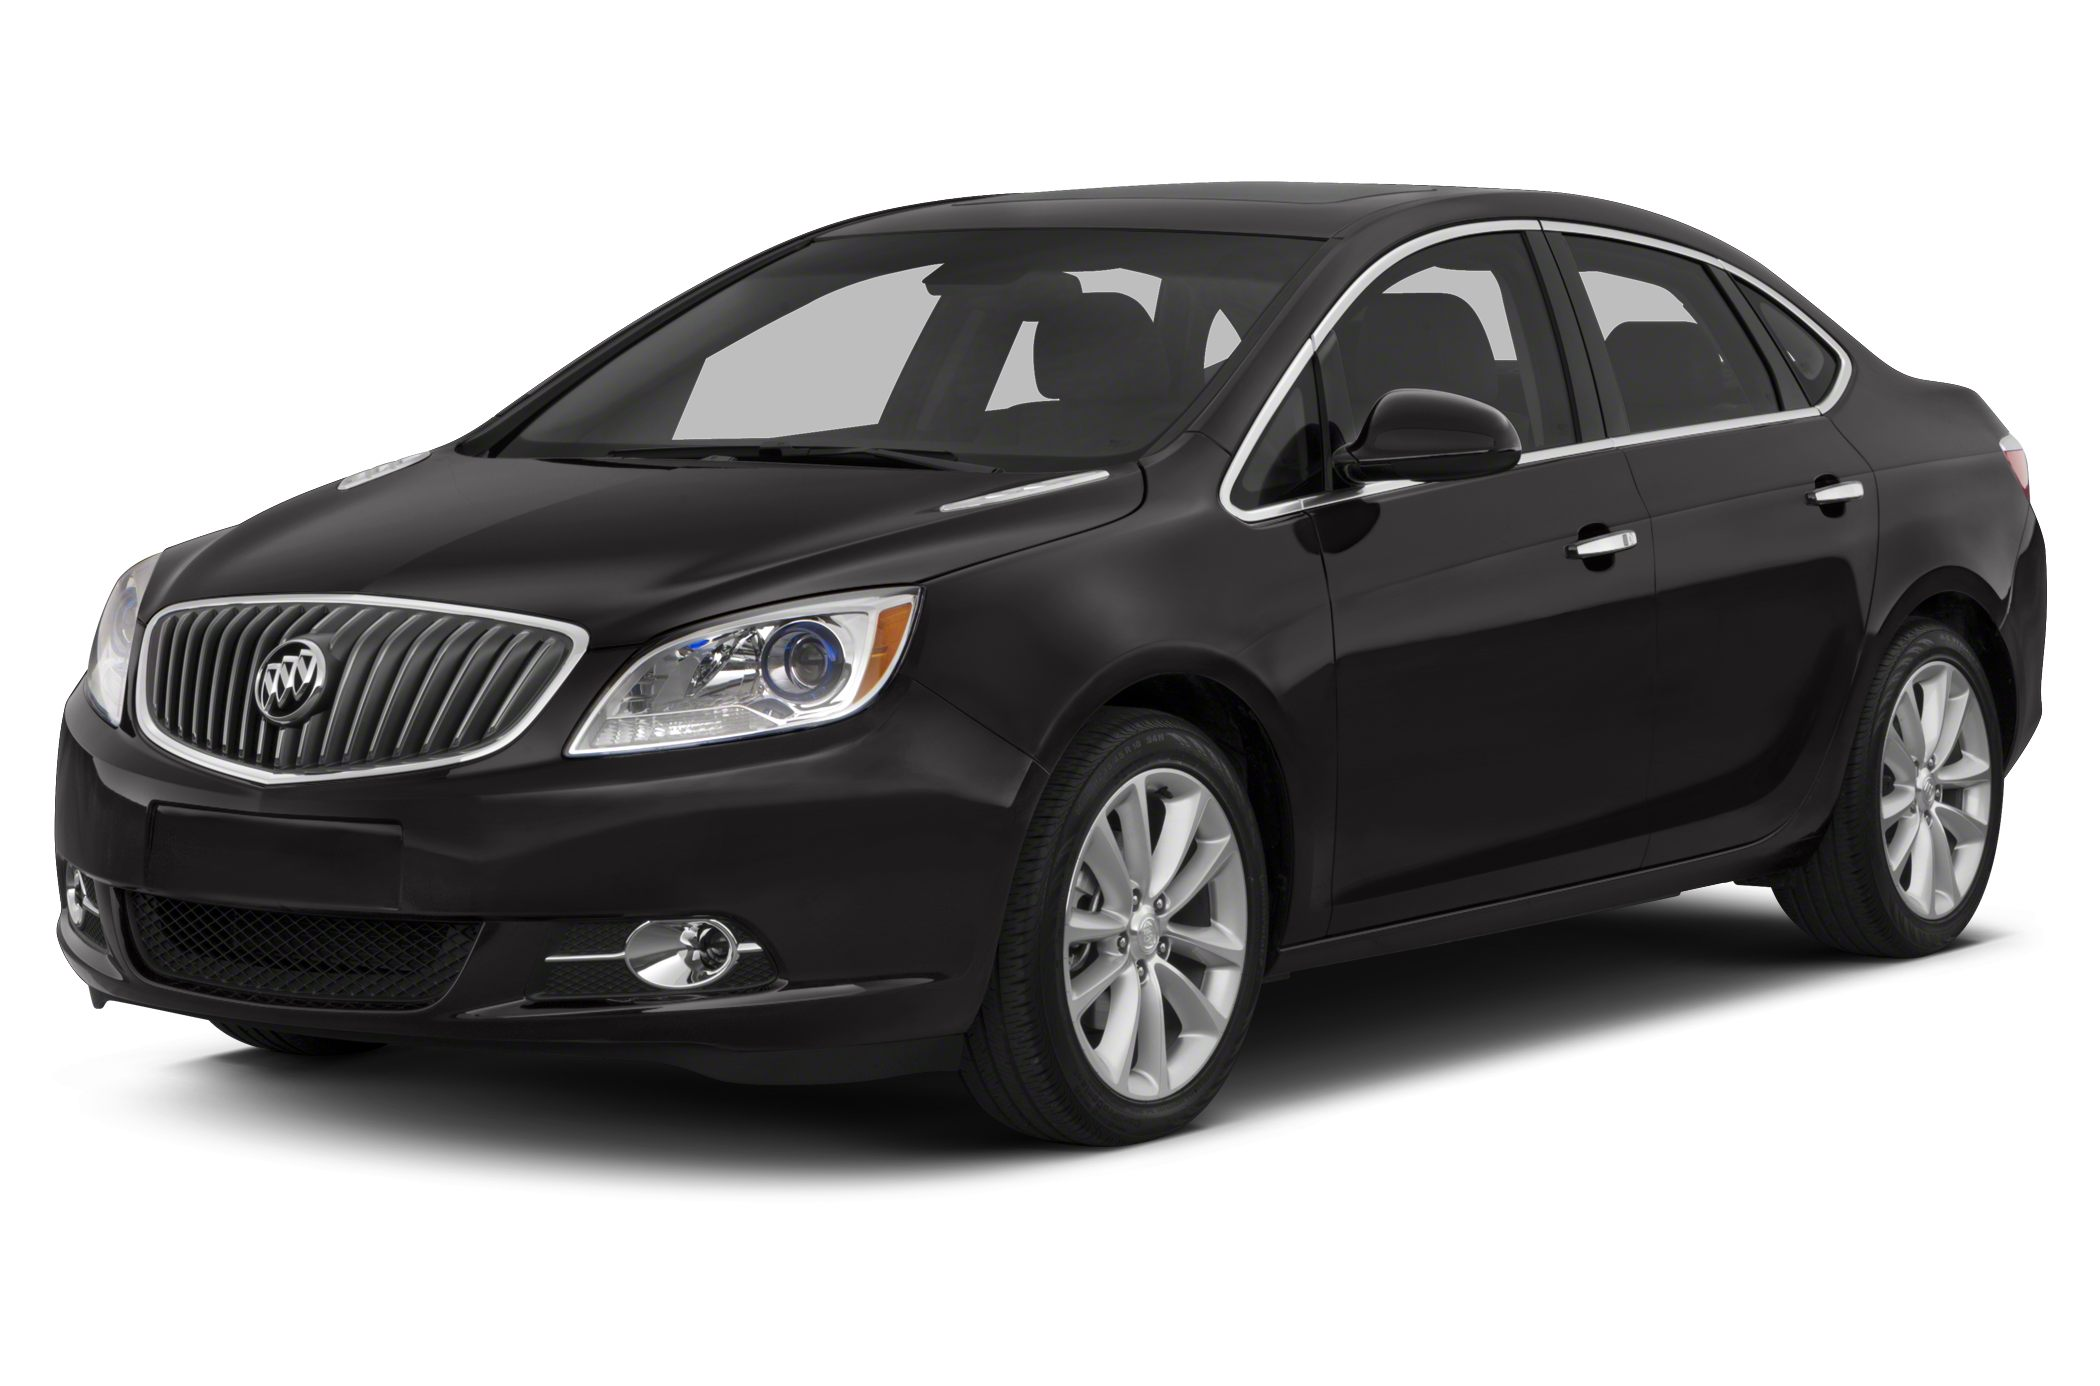 2013 Buick Verano Convenience Sedan for sale in Burlington for $16,990 with 24,612 miles.